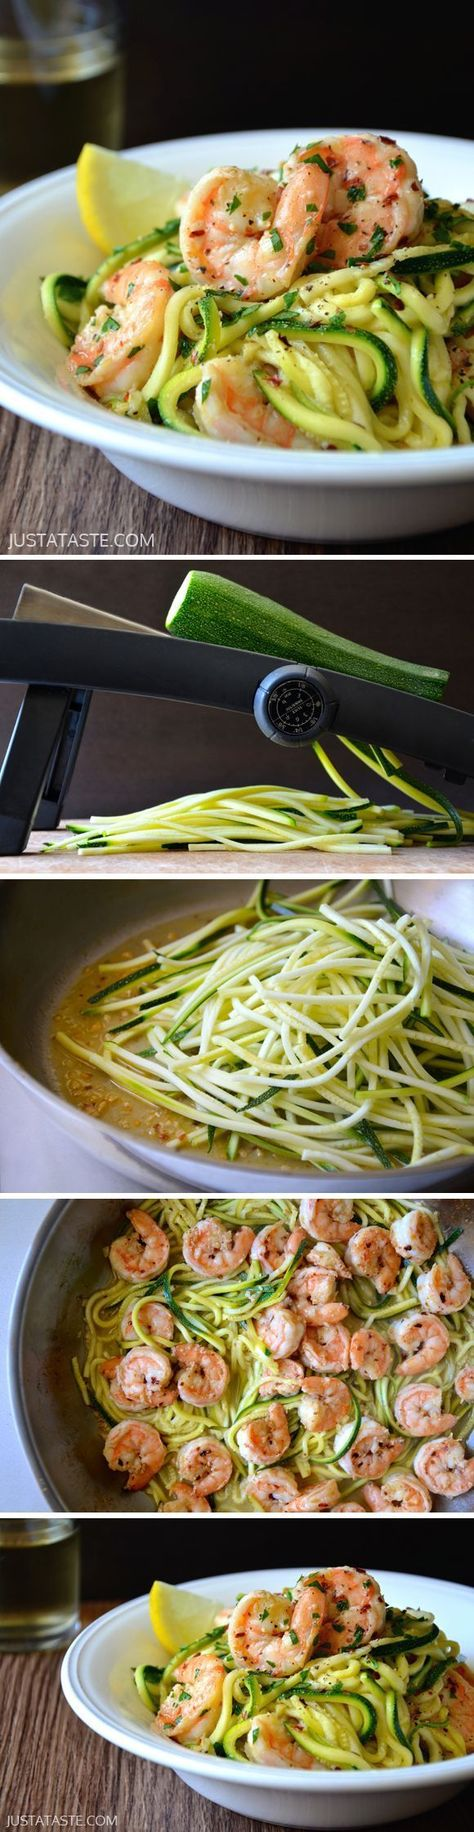 Shrimp Scampi with Zucchini Noodles - Enjoy this recipe and For great motivation, health and fitness tips, check them out at: